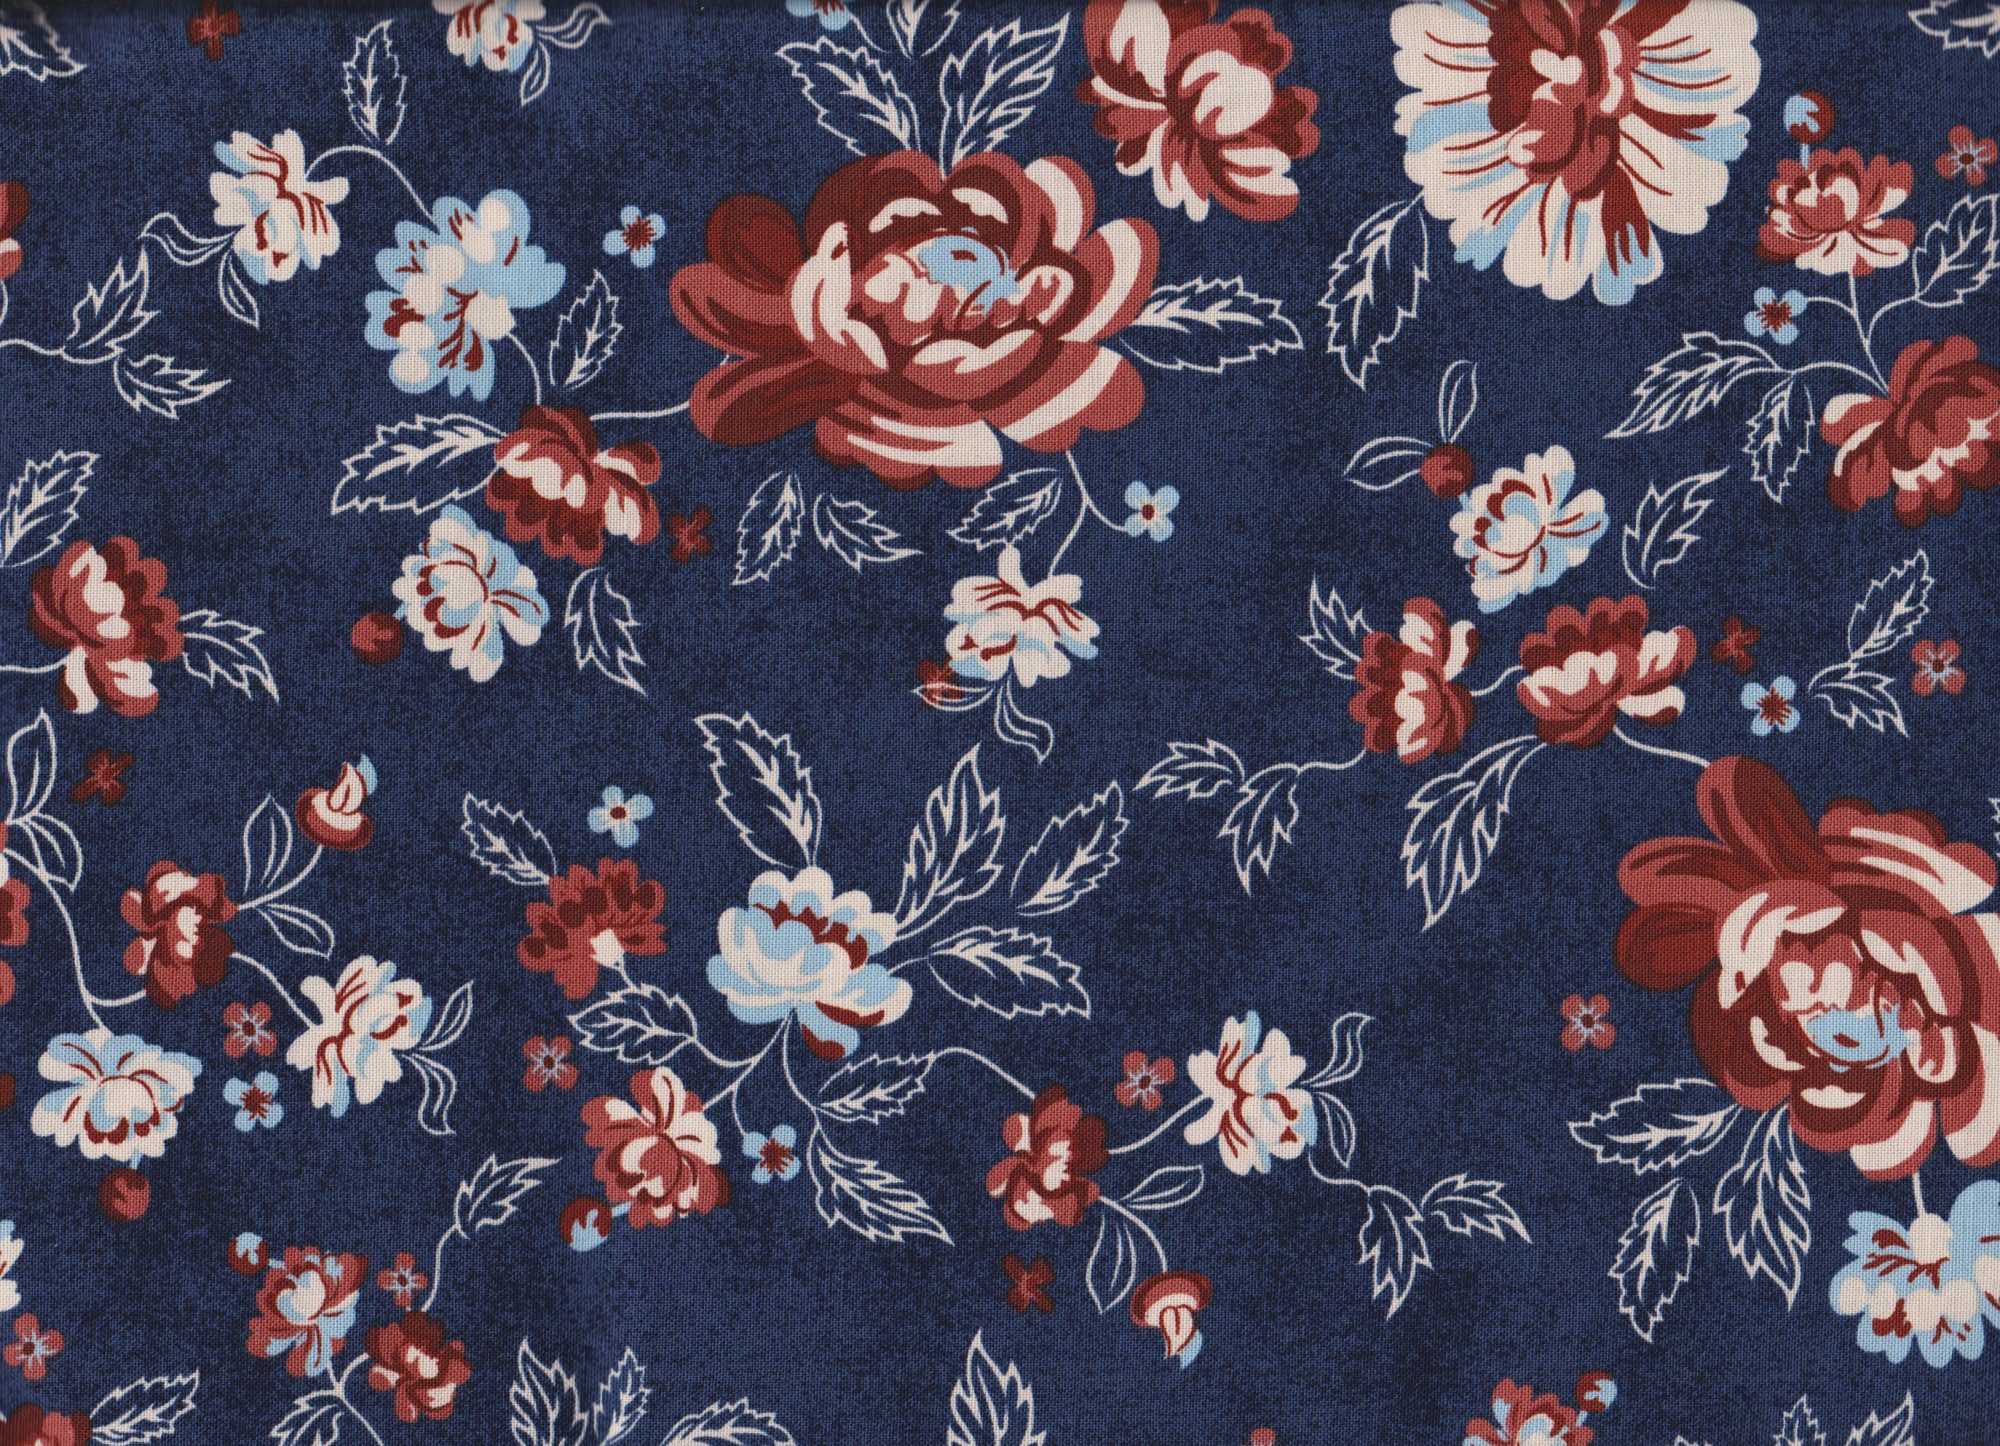 PROMO* Boundless Pre Cuts - 82058 Navy/Brick Red Floral